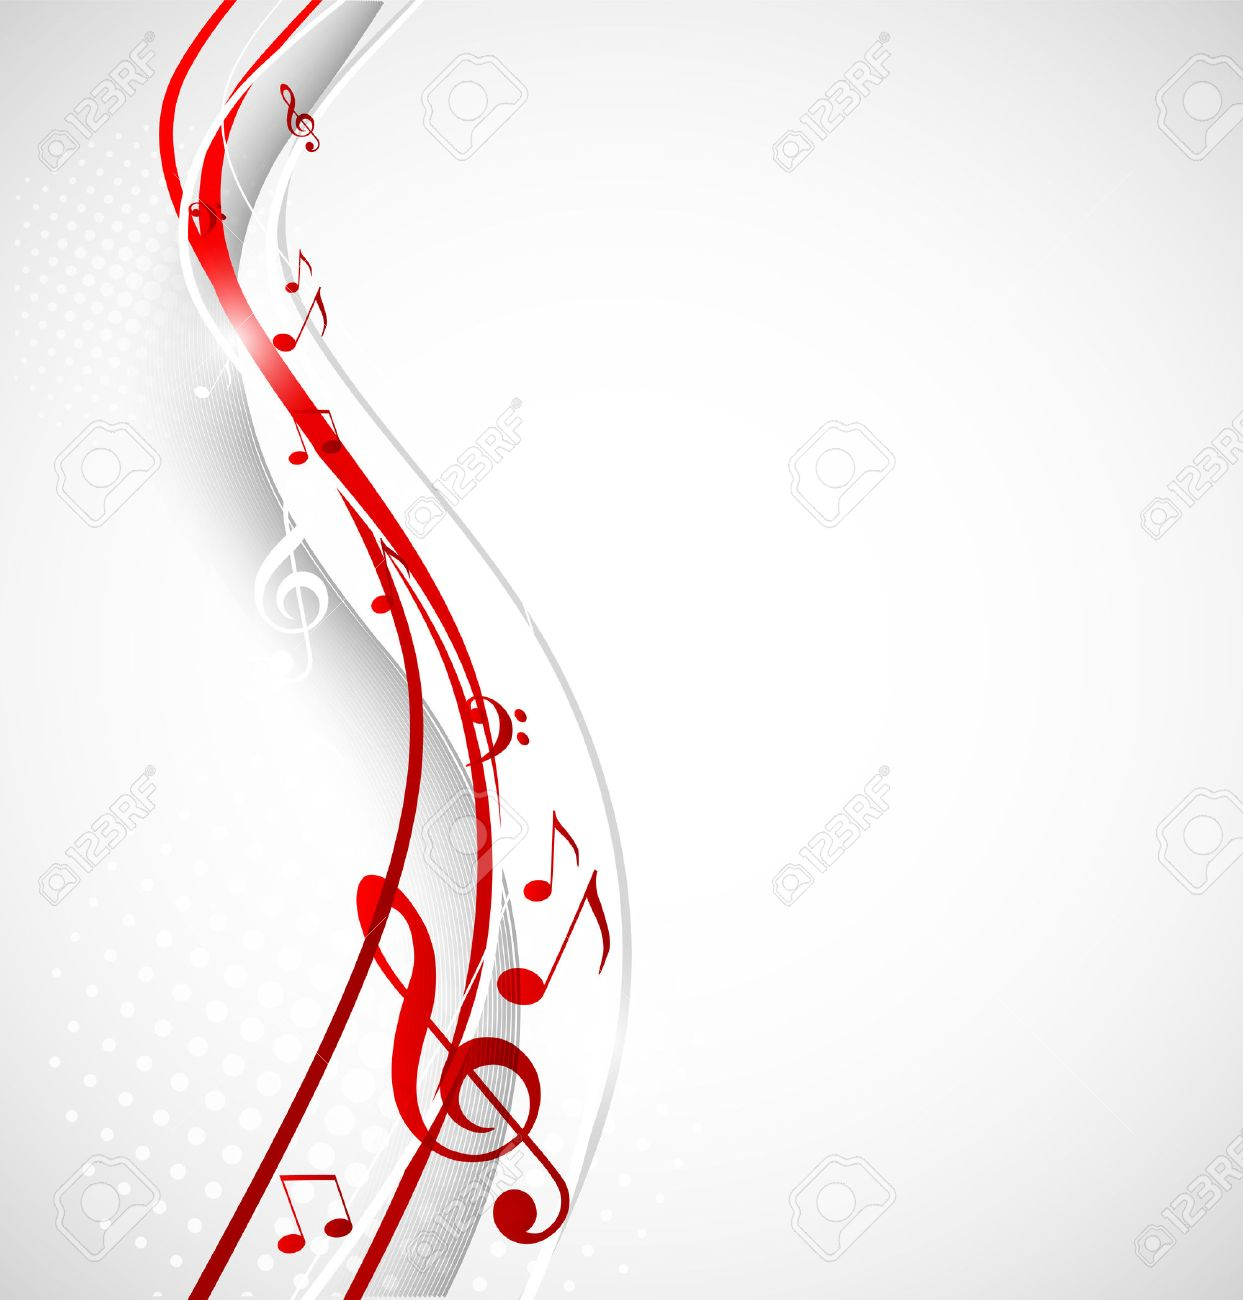 Musical notes staff background on white vector by tassel78 image - Music Notes Color Music Background